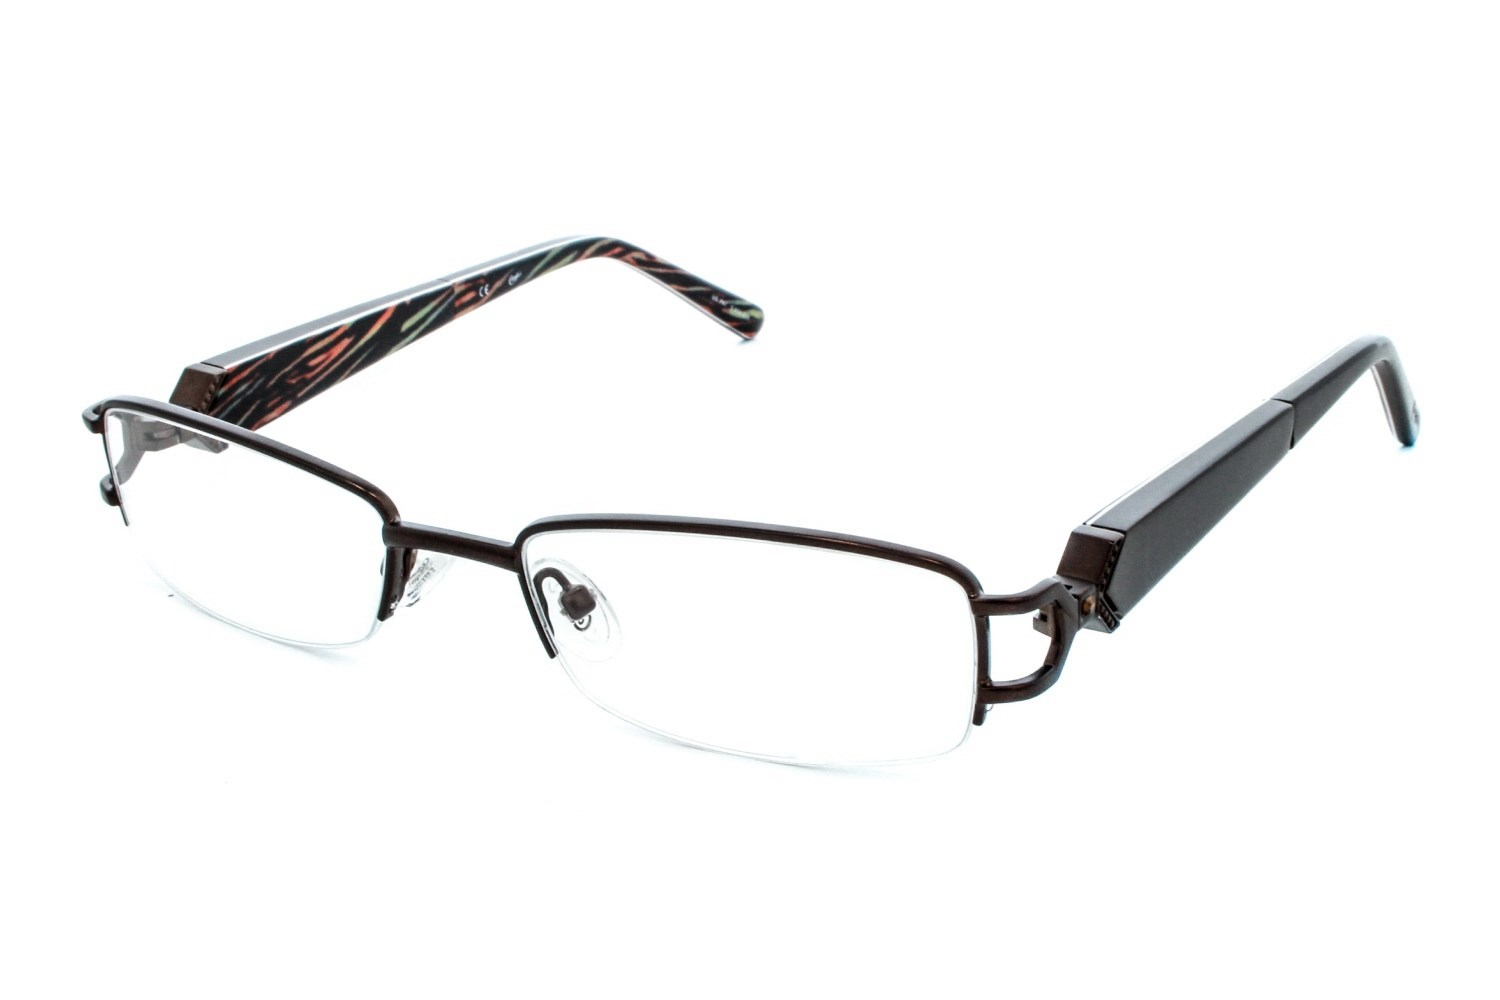 148dcbe87e611 Candies Brynn Prescription Eyeglasses - LowdownSunglasses